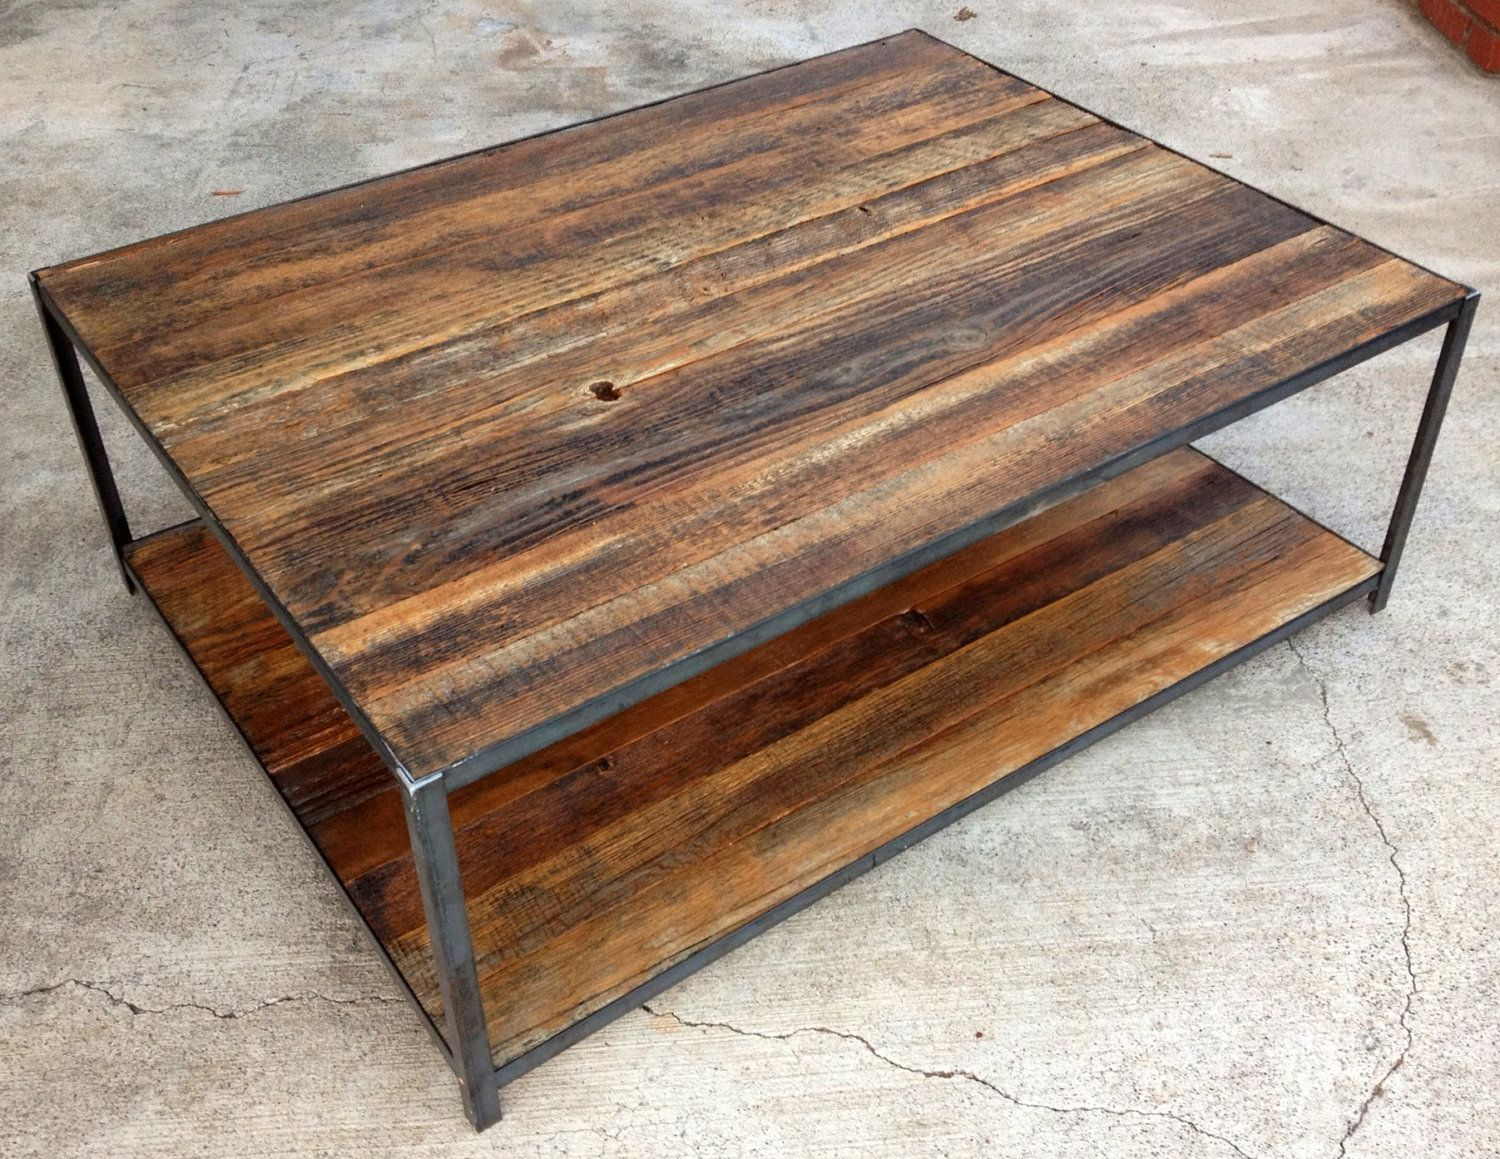 reclaimed wood and angle iron coffee table via etsy home sweet home pinterest. Black Bedroom Furniture Sets. Home Design Ideas